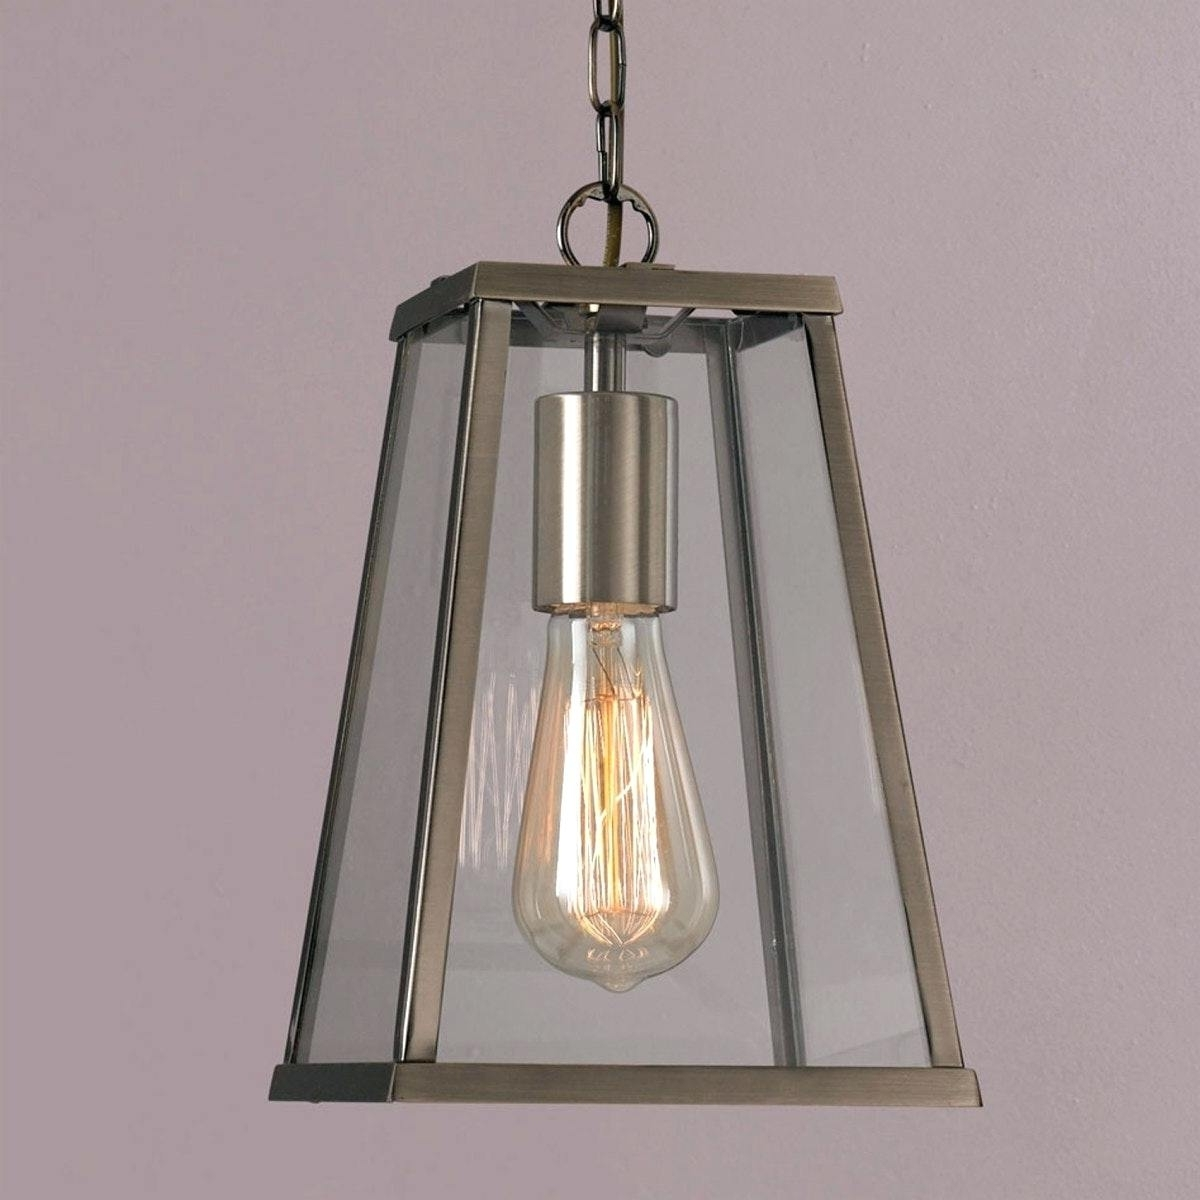 Lantern Ceiling Lights Hangg Hanging Indoor Pendant Light Uk Outdoor With Regard To Popular Outdoor Hanging Lights At Ebay (Gallery 19 of 20)